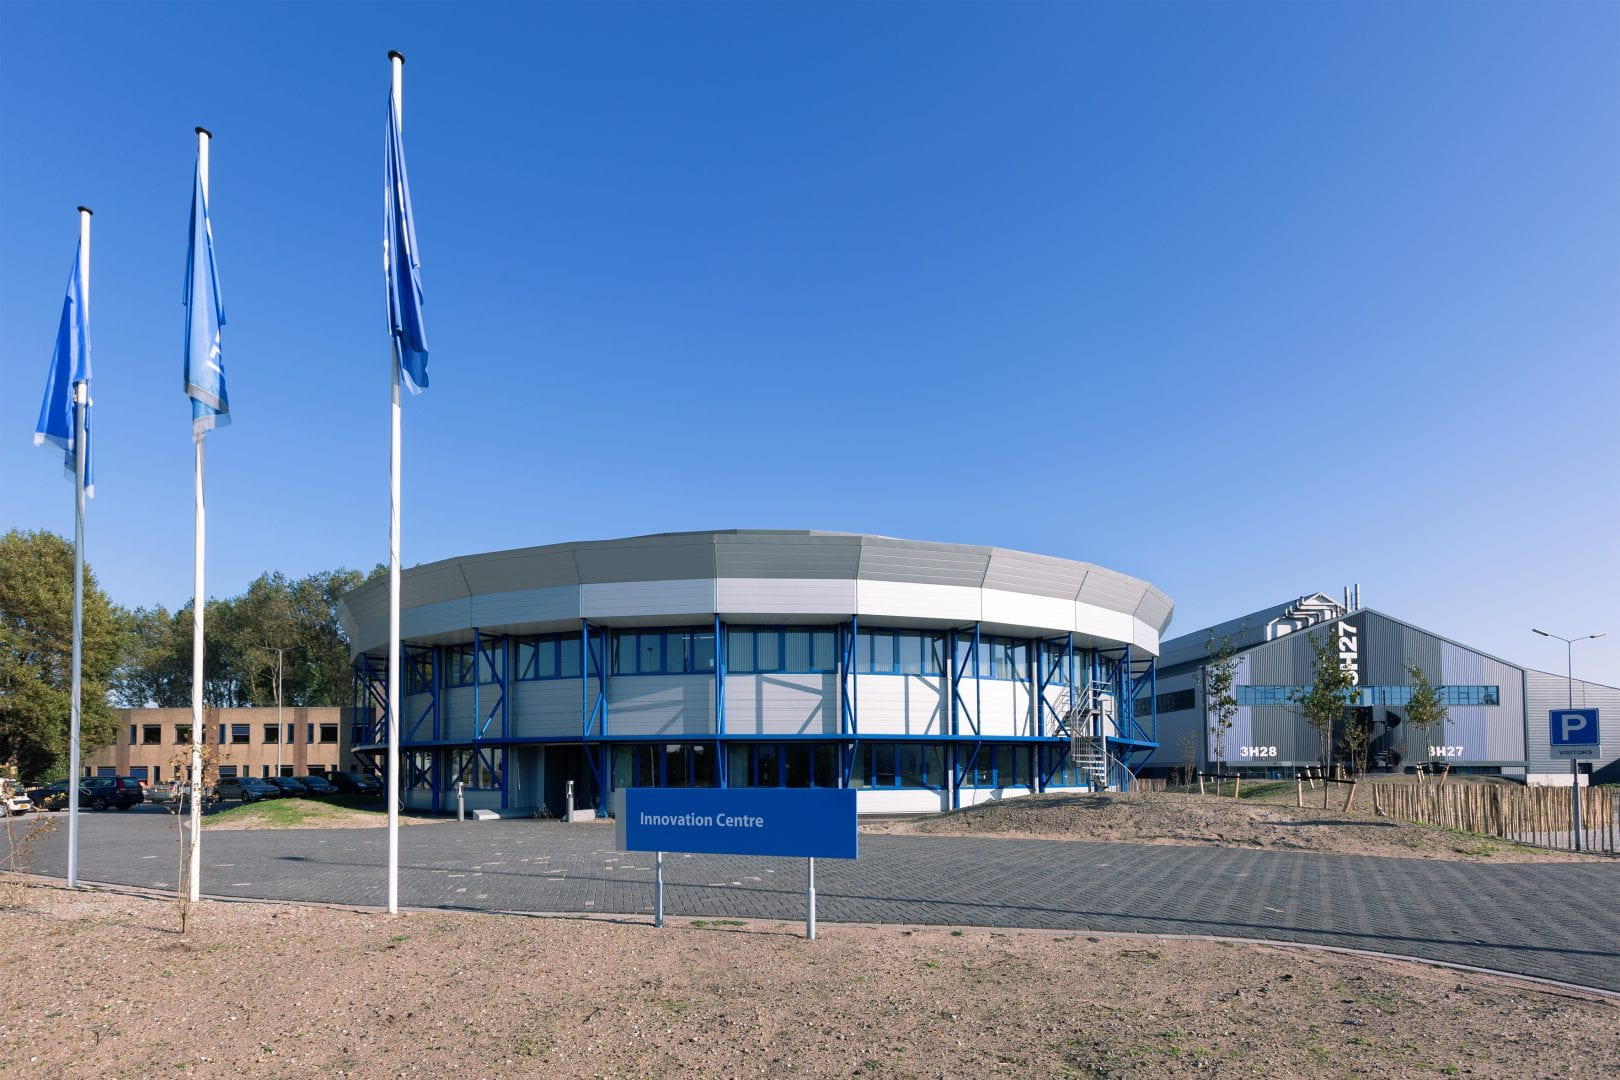 Tata Steel Innovation Centre